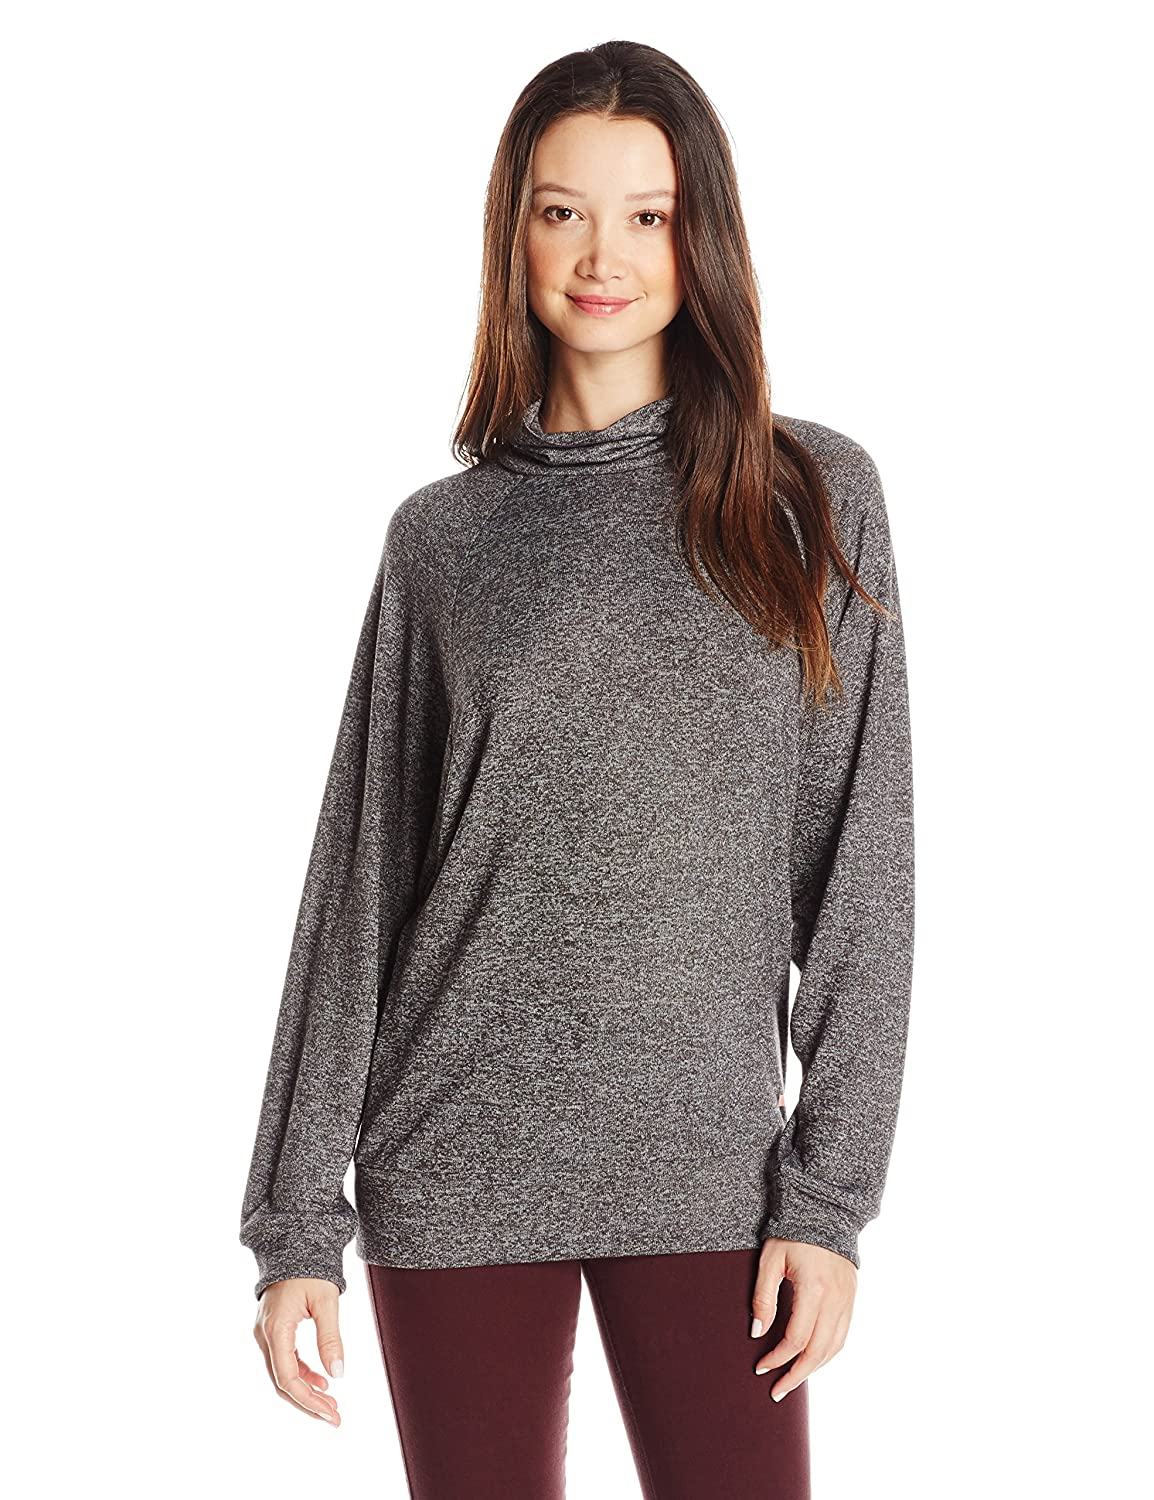 Roxy Women's Vinissa Loose Fit Fleece Pullover Top Roxy Women's Activewear ERJFT03374